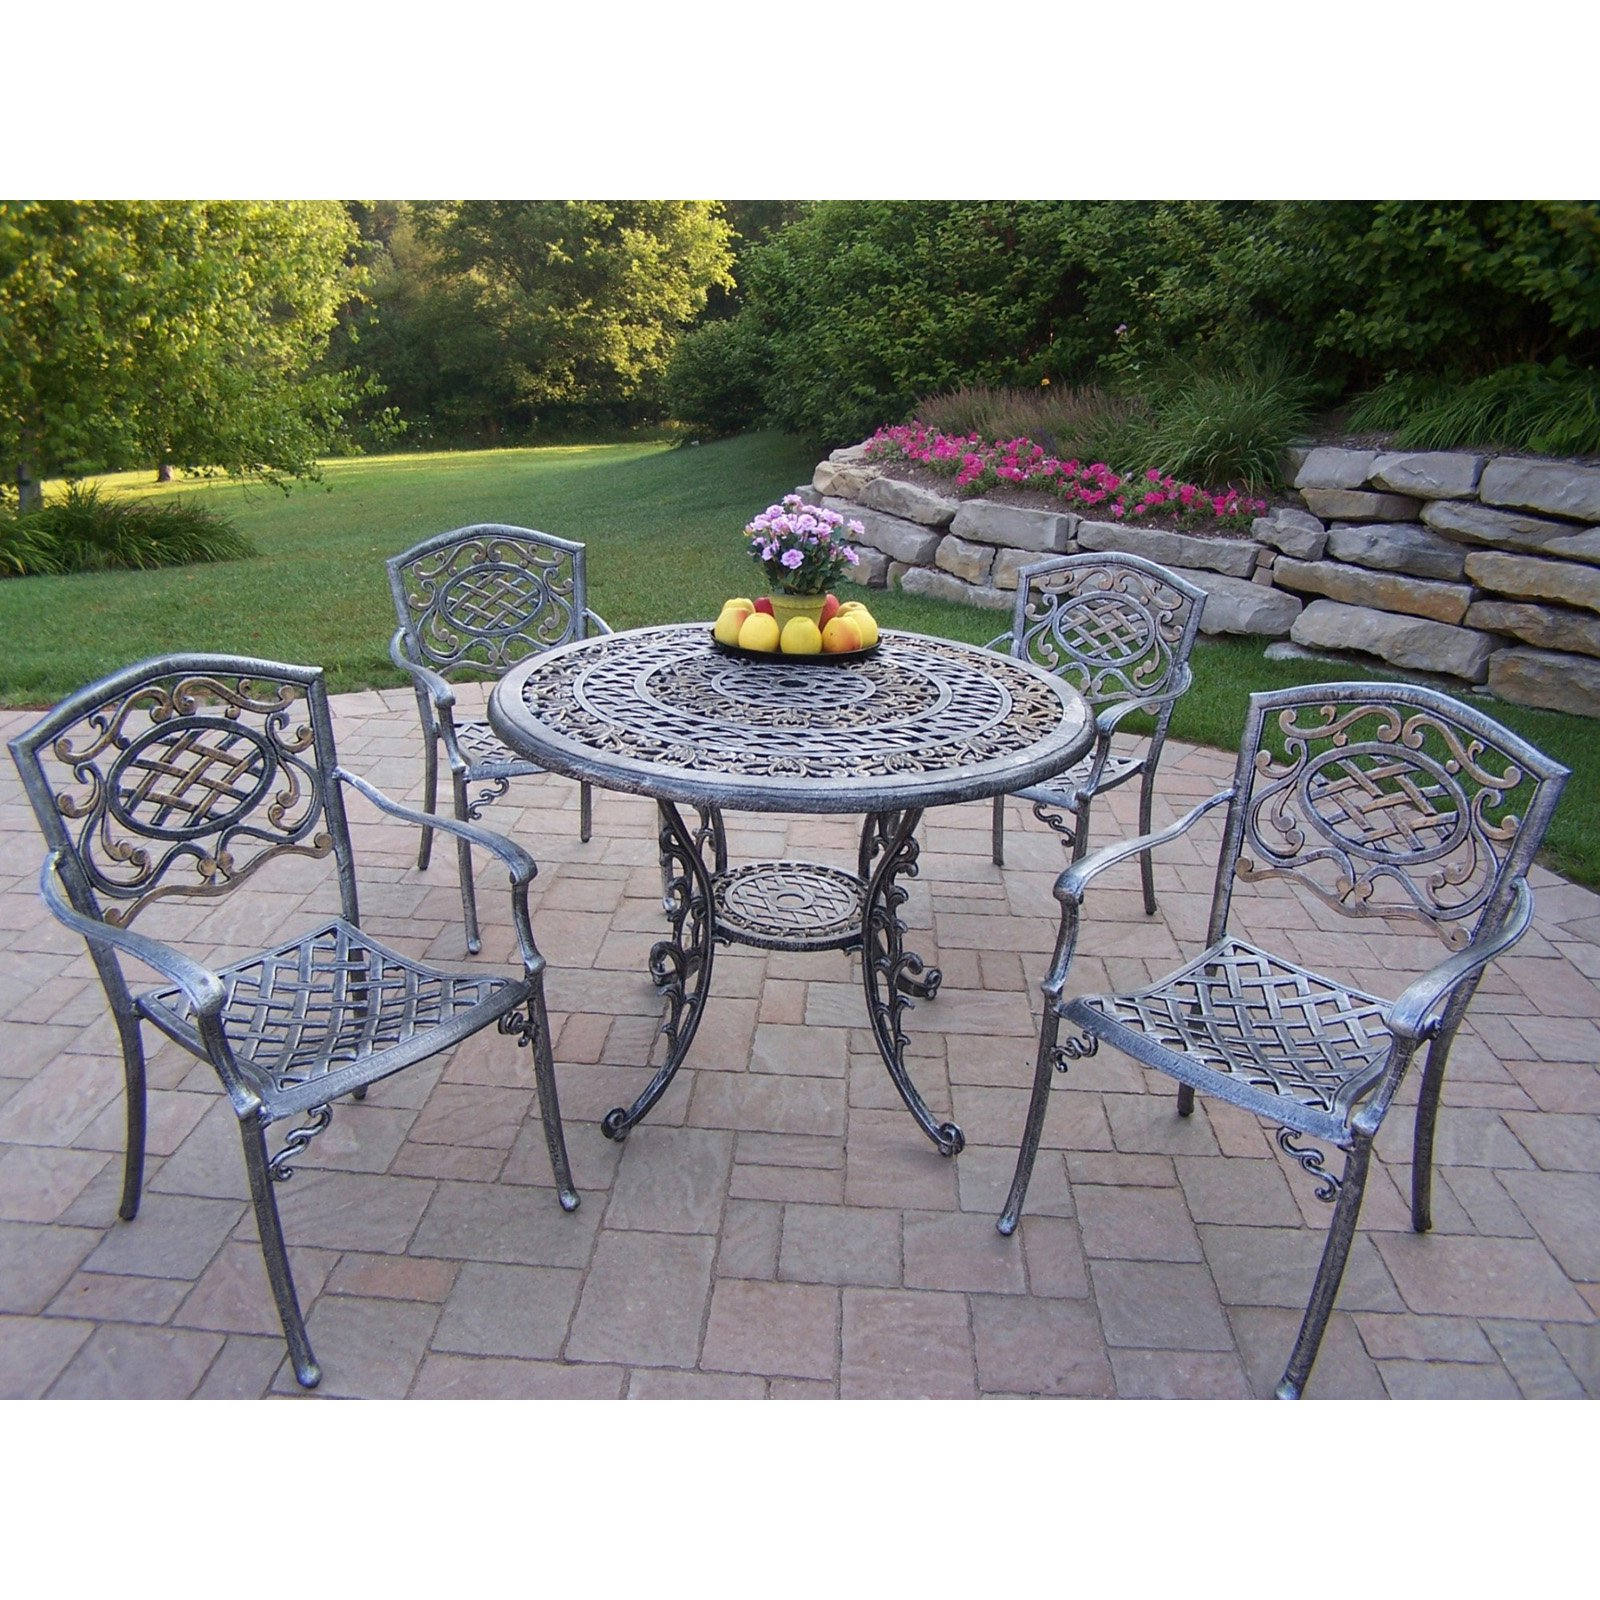 Oakland Living Mississippi Cast 42 in. Patio Dining Set - Seats 4